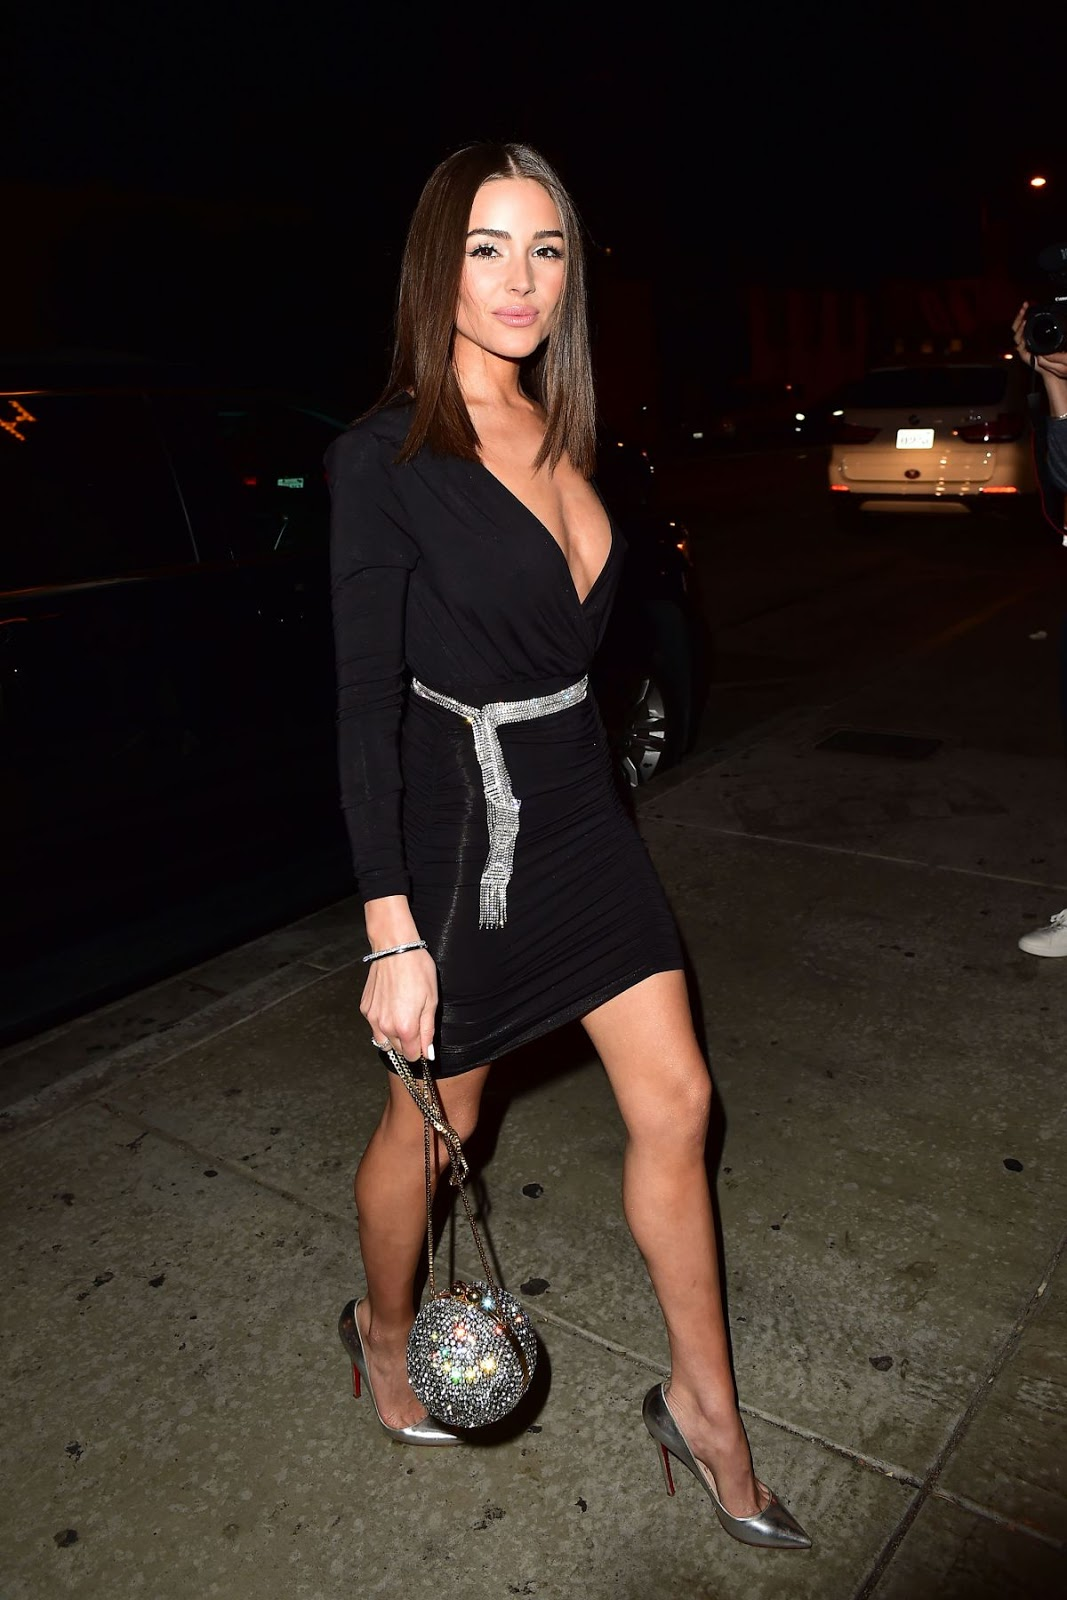 Olivia Culpo Celebrates the launch of her capsule collection with Express at Catch LA - 01/24/2019